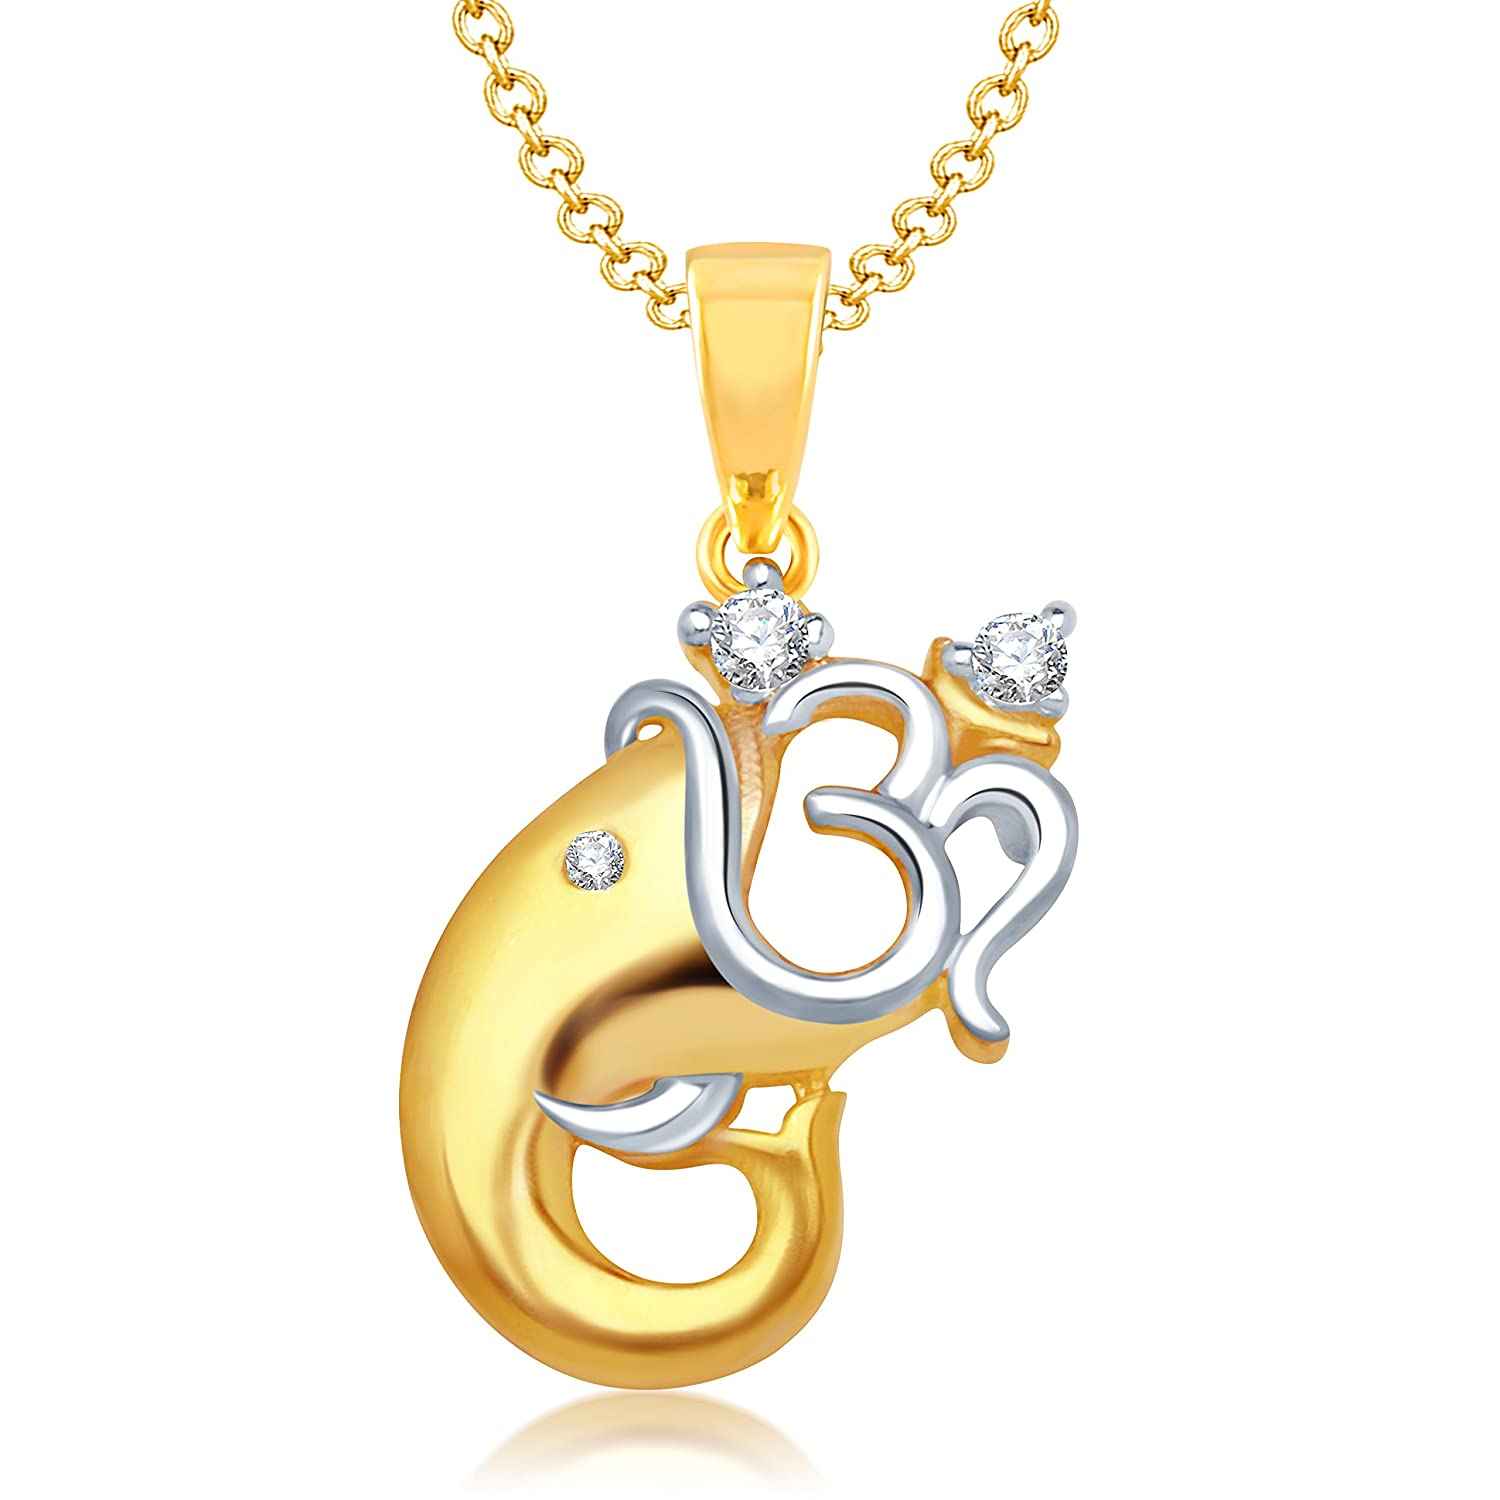 rhodium and lockets gold made vk men cubic alloy dp male zirconia with women pendant in jewellery for amazon vakratund om god plated jewels